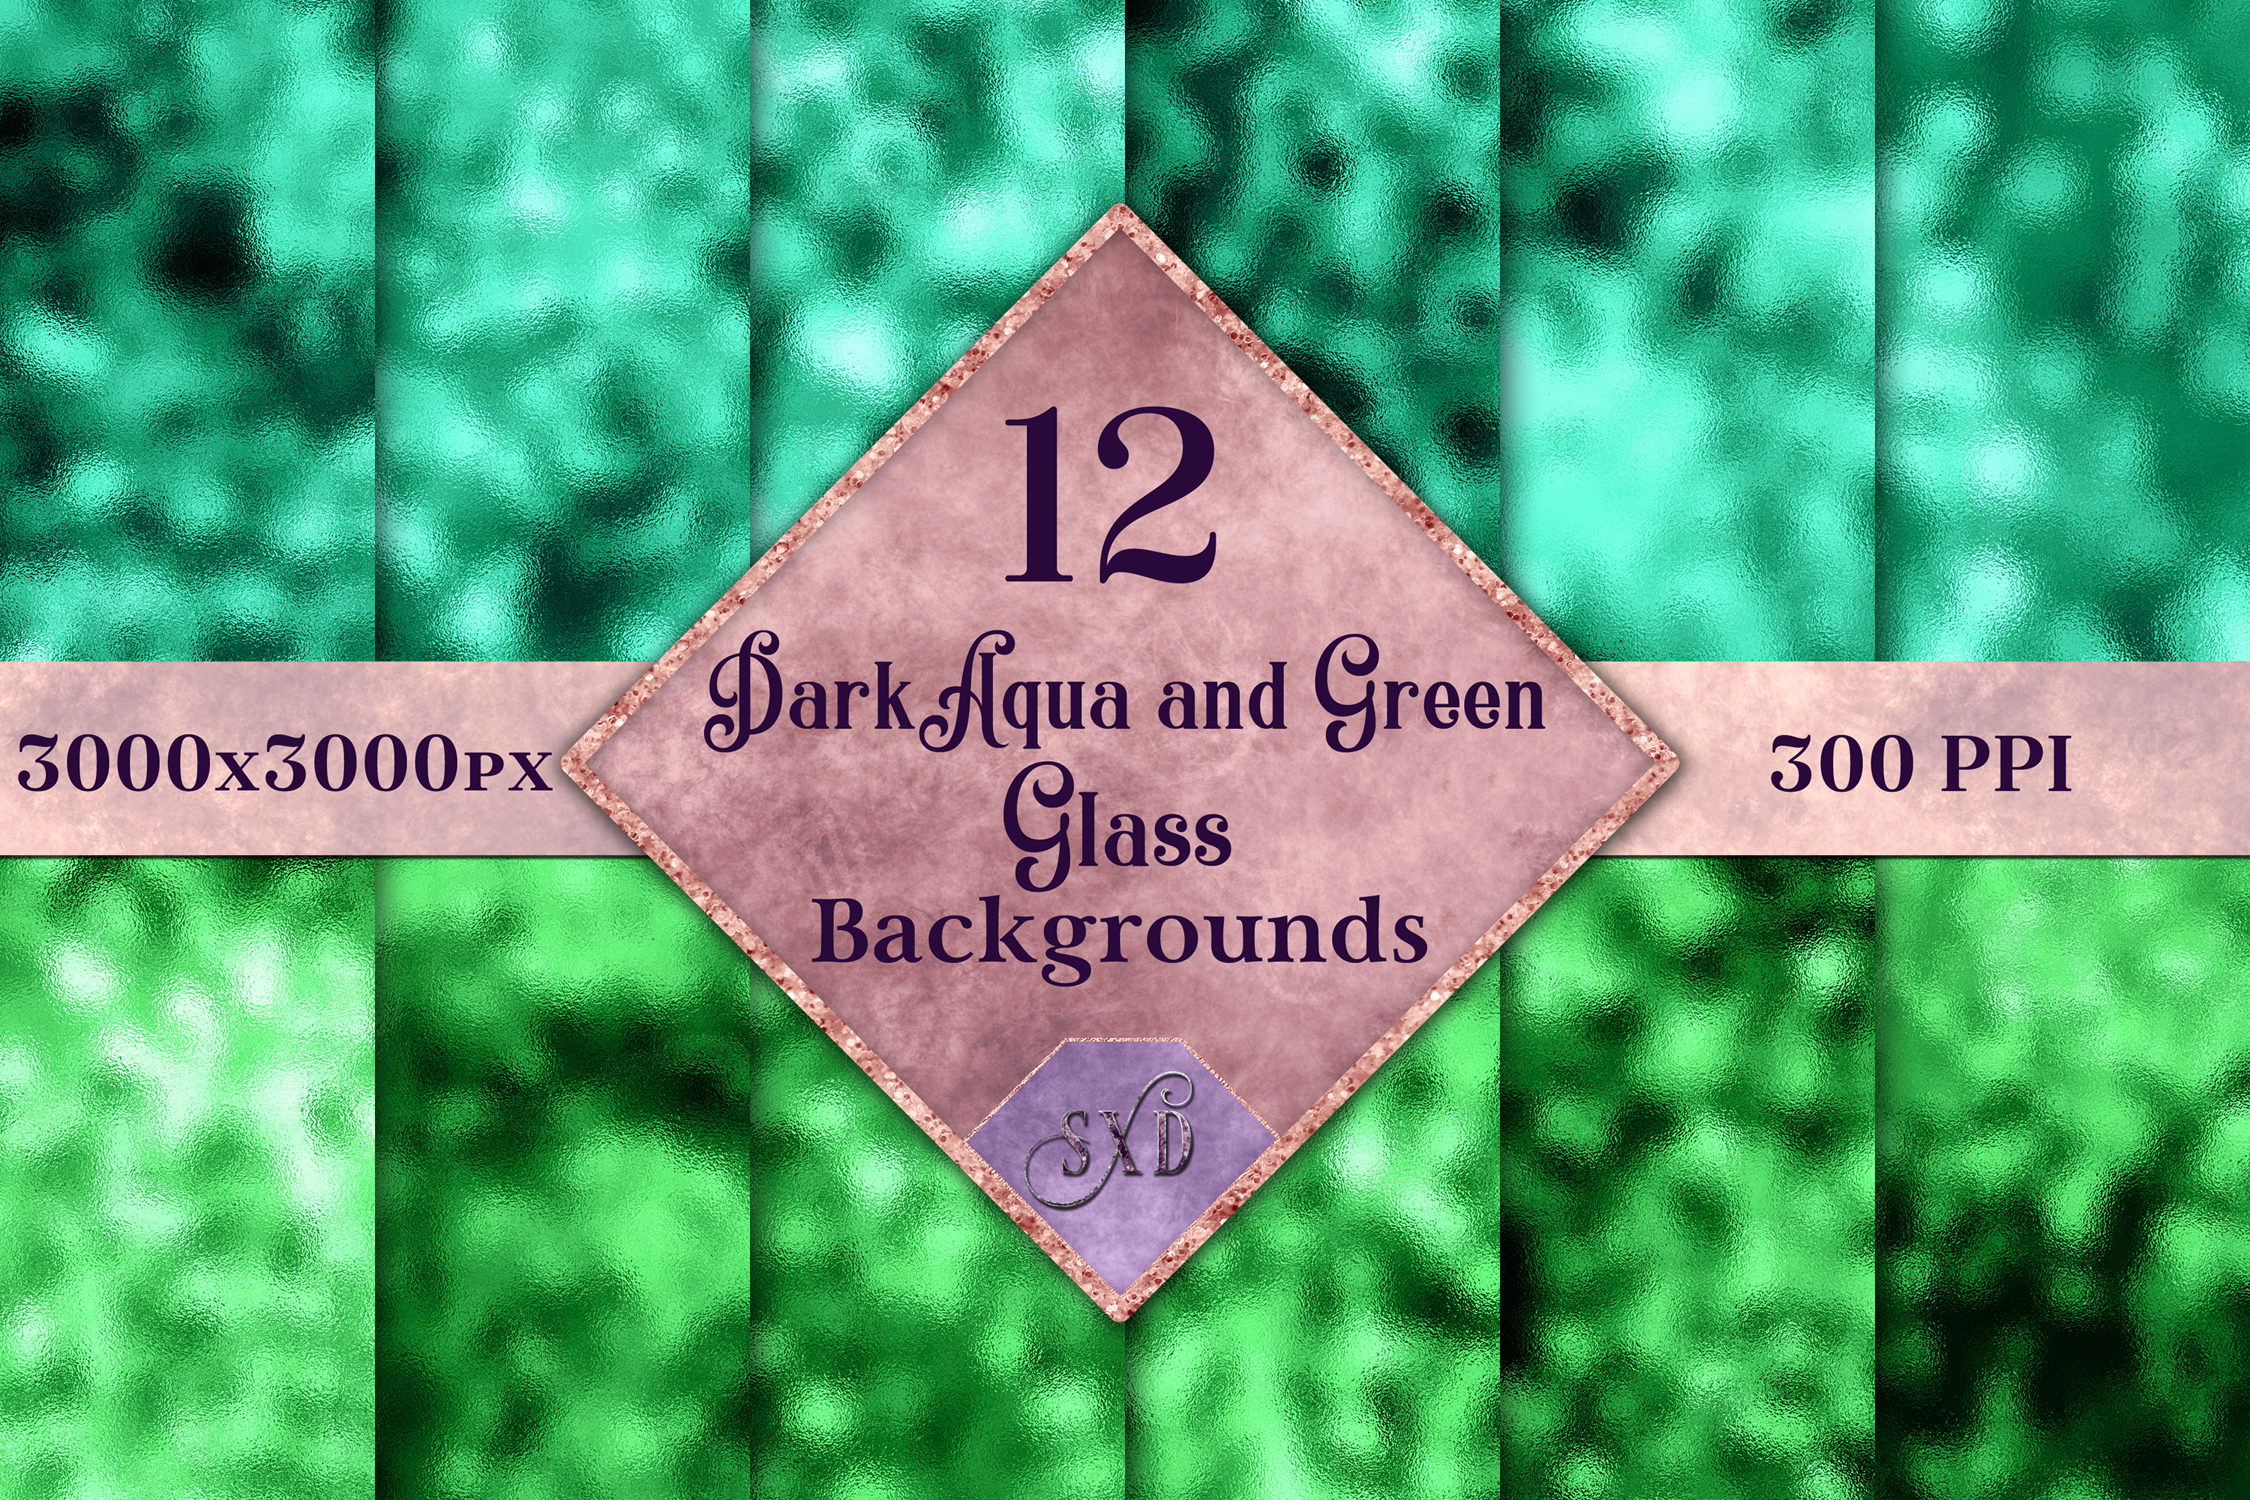 Dark Aqua and Green Glass Backgrounds - 12 Image Textures example image 1